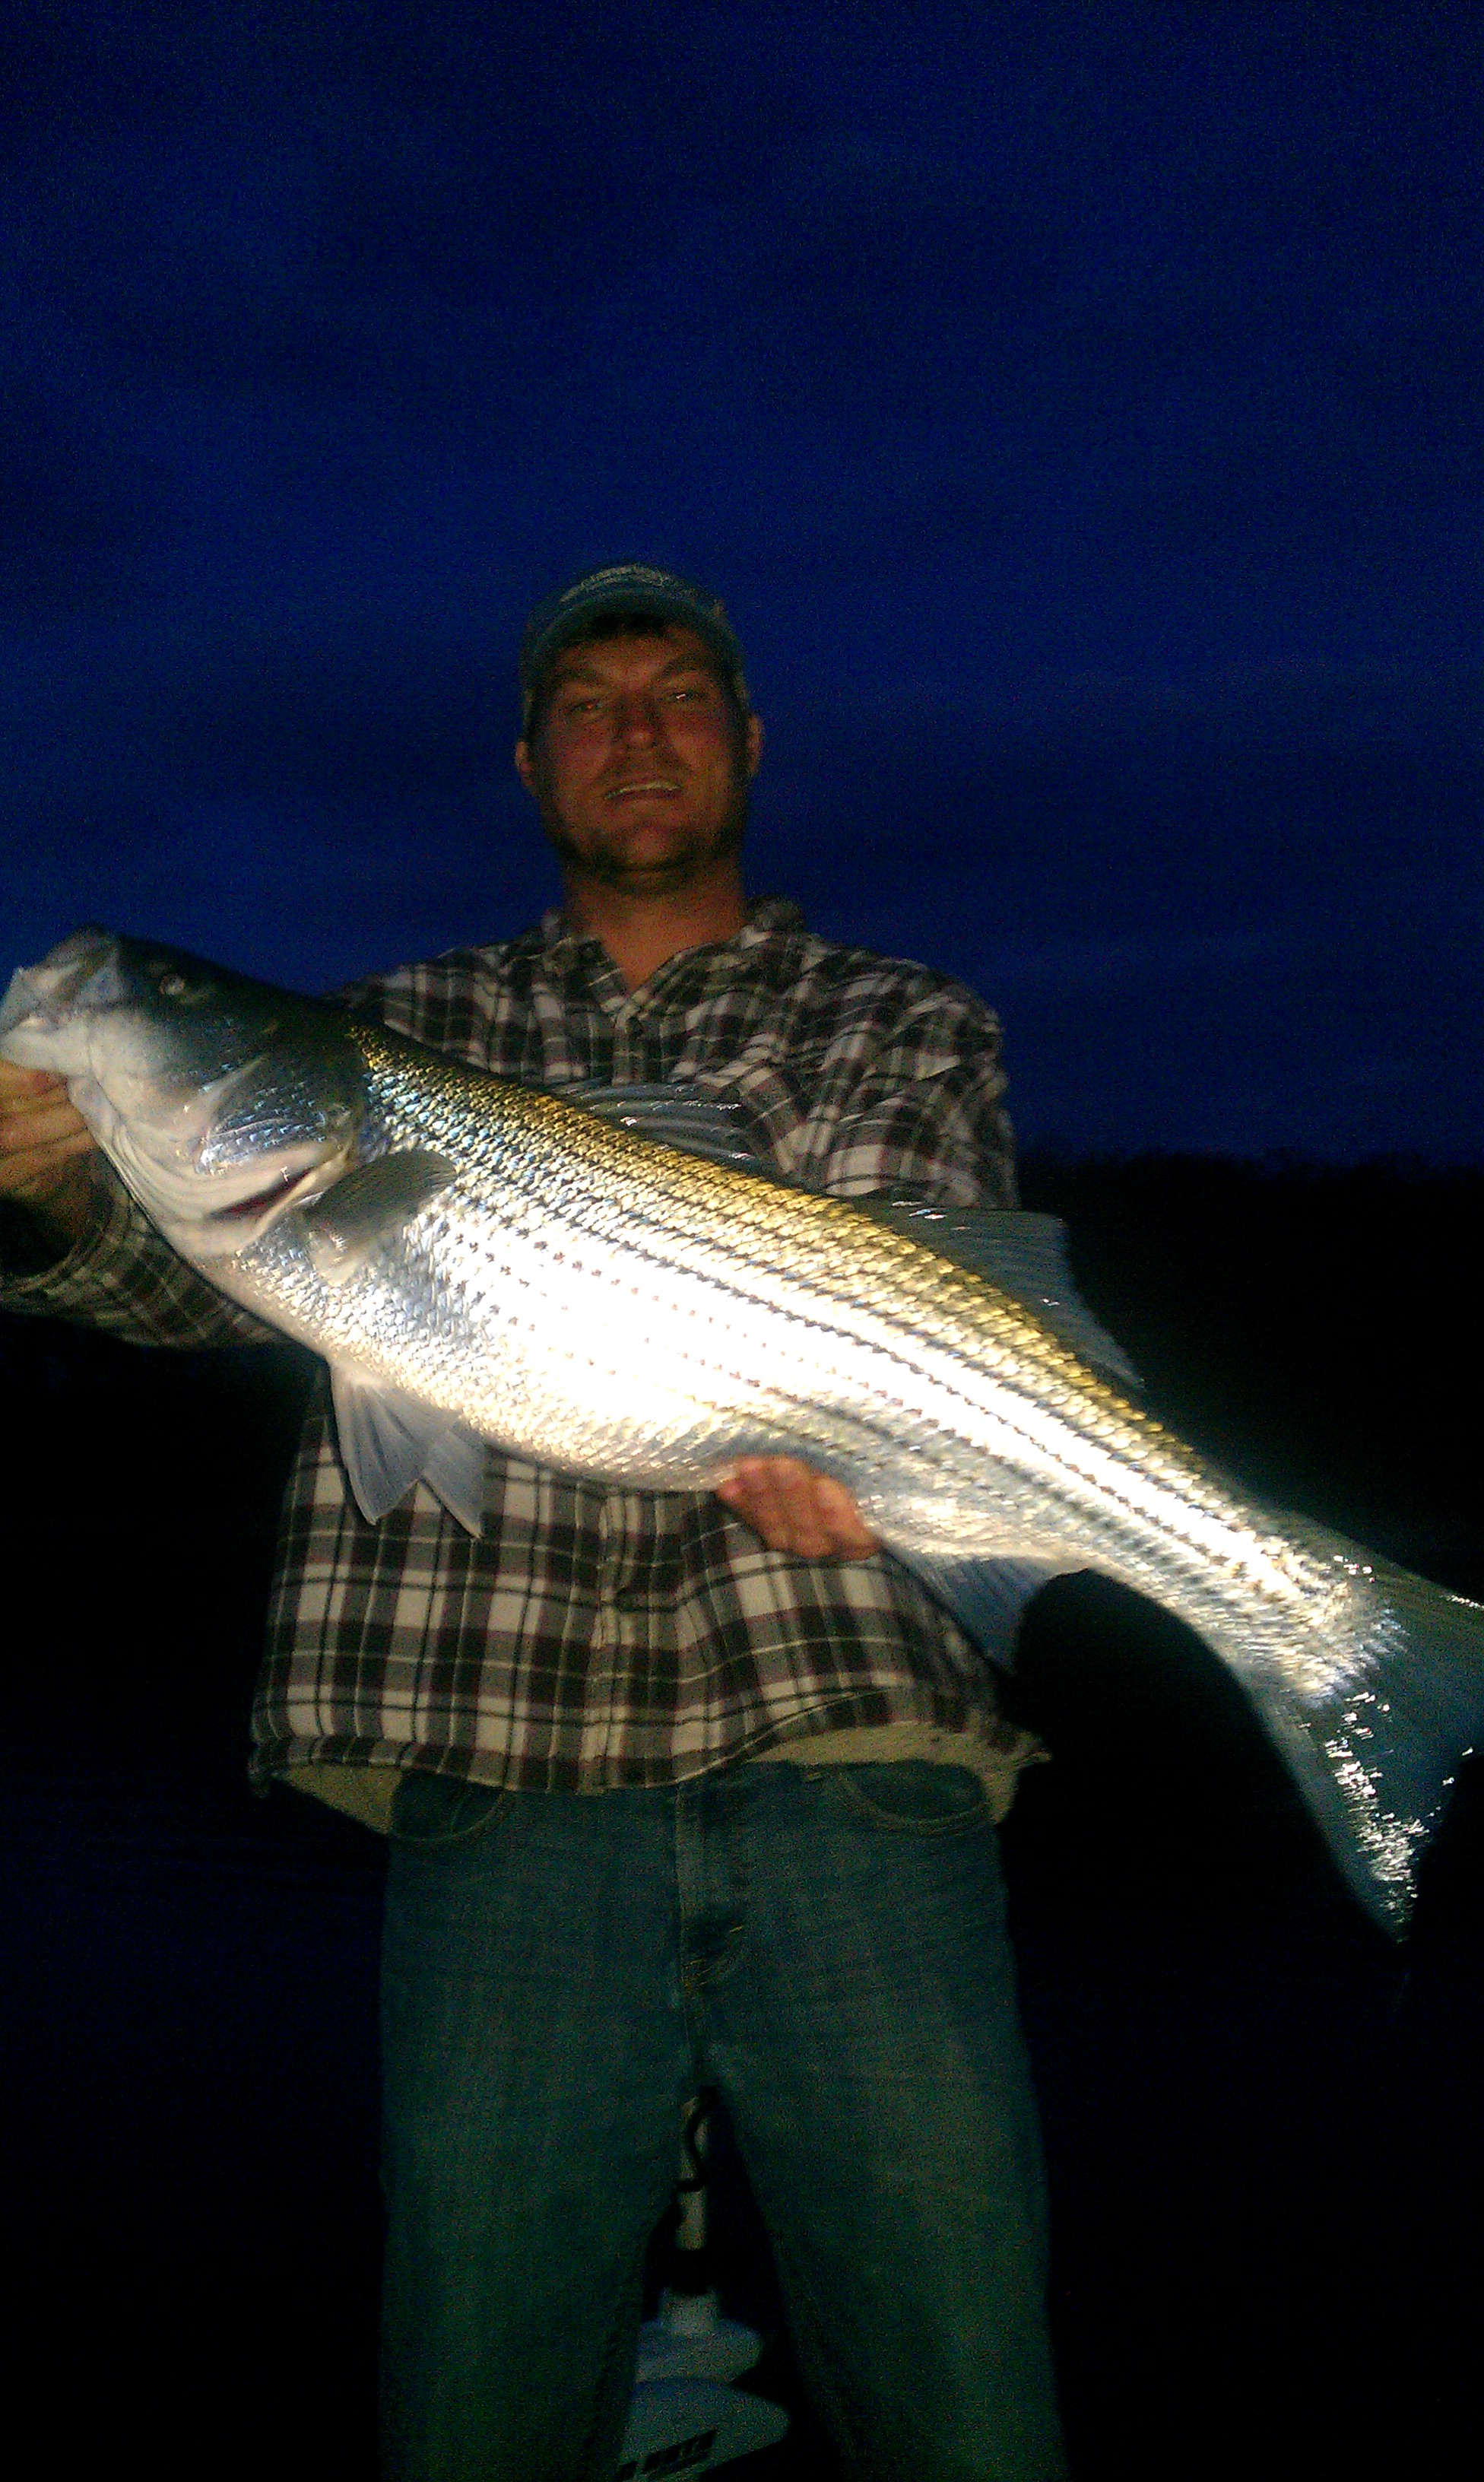 Lake lanier striper fishing dec 1 2012 striper steve 39 s for Lake lanier striper fishing